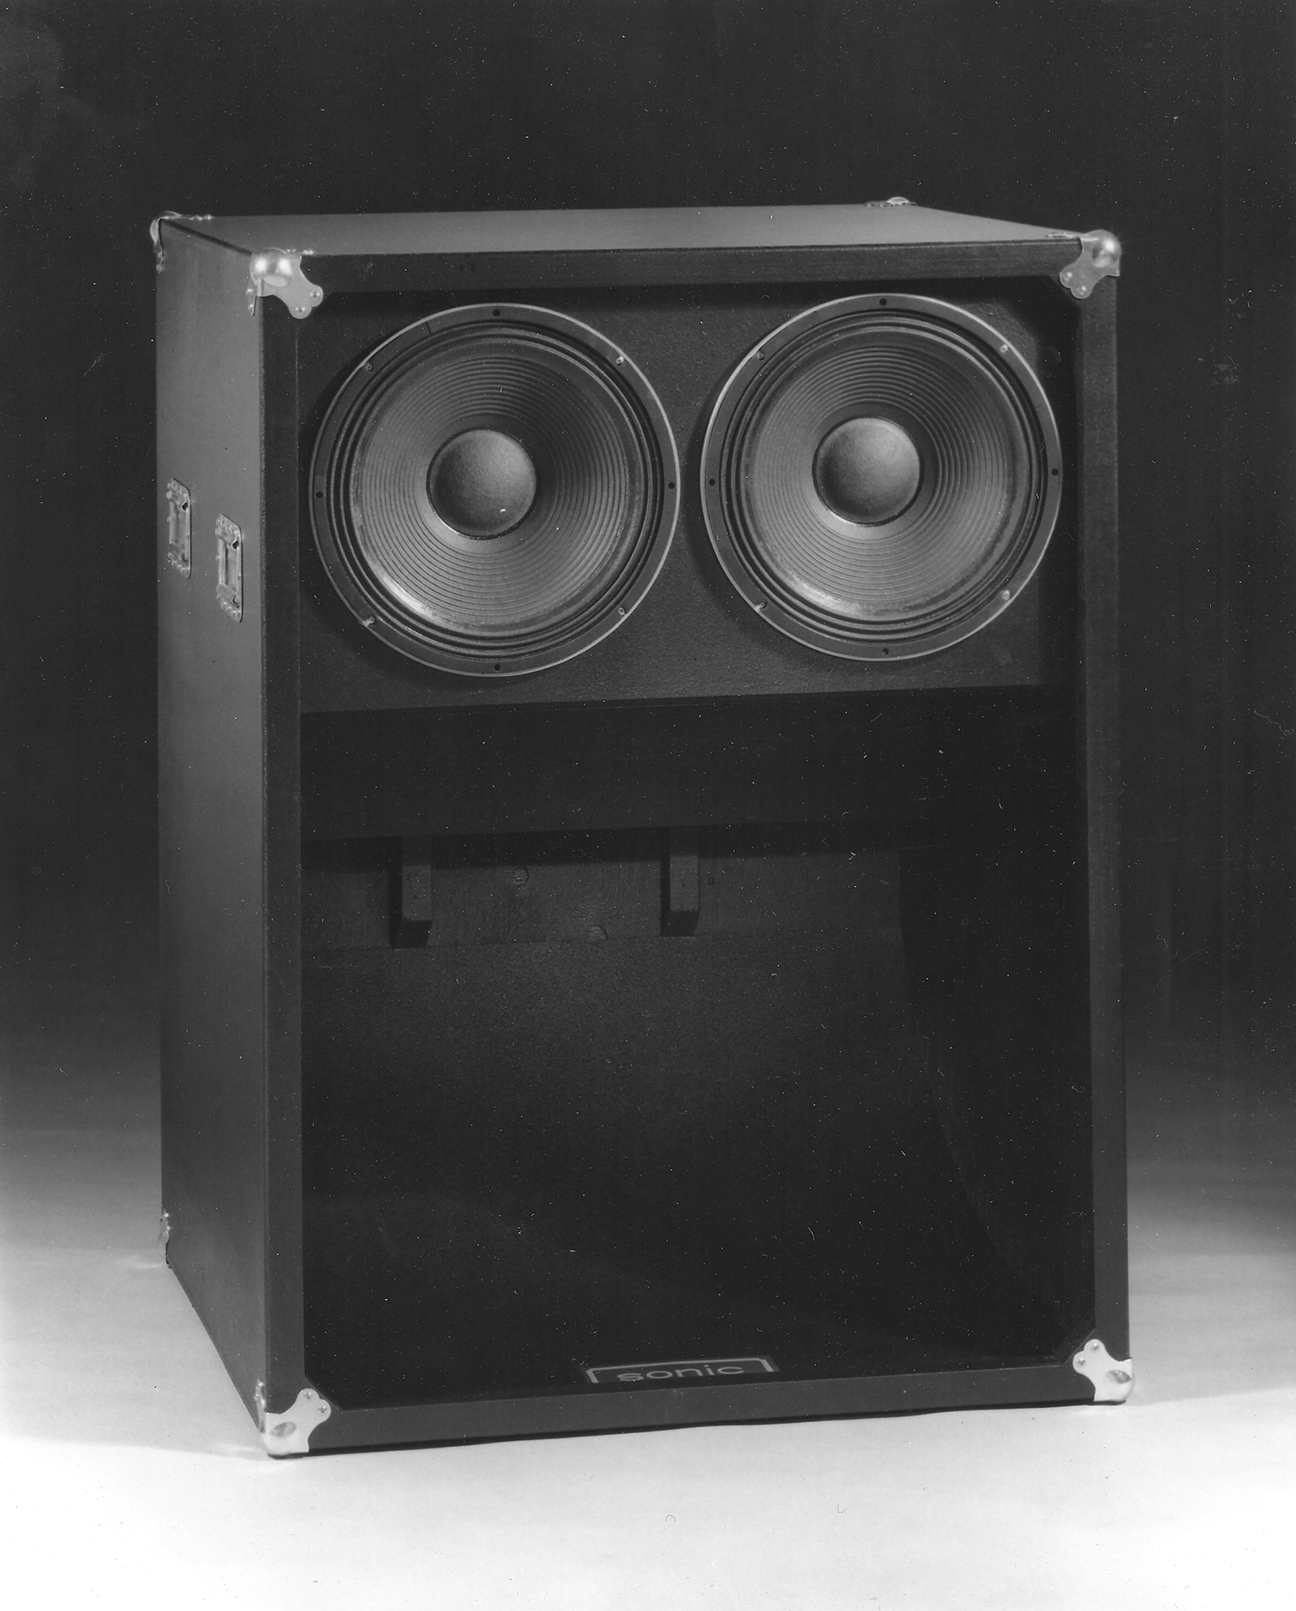 Sonic Speaker Systems - 1982 Product Catalog